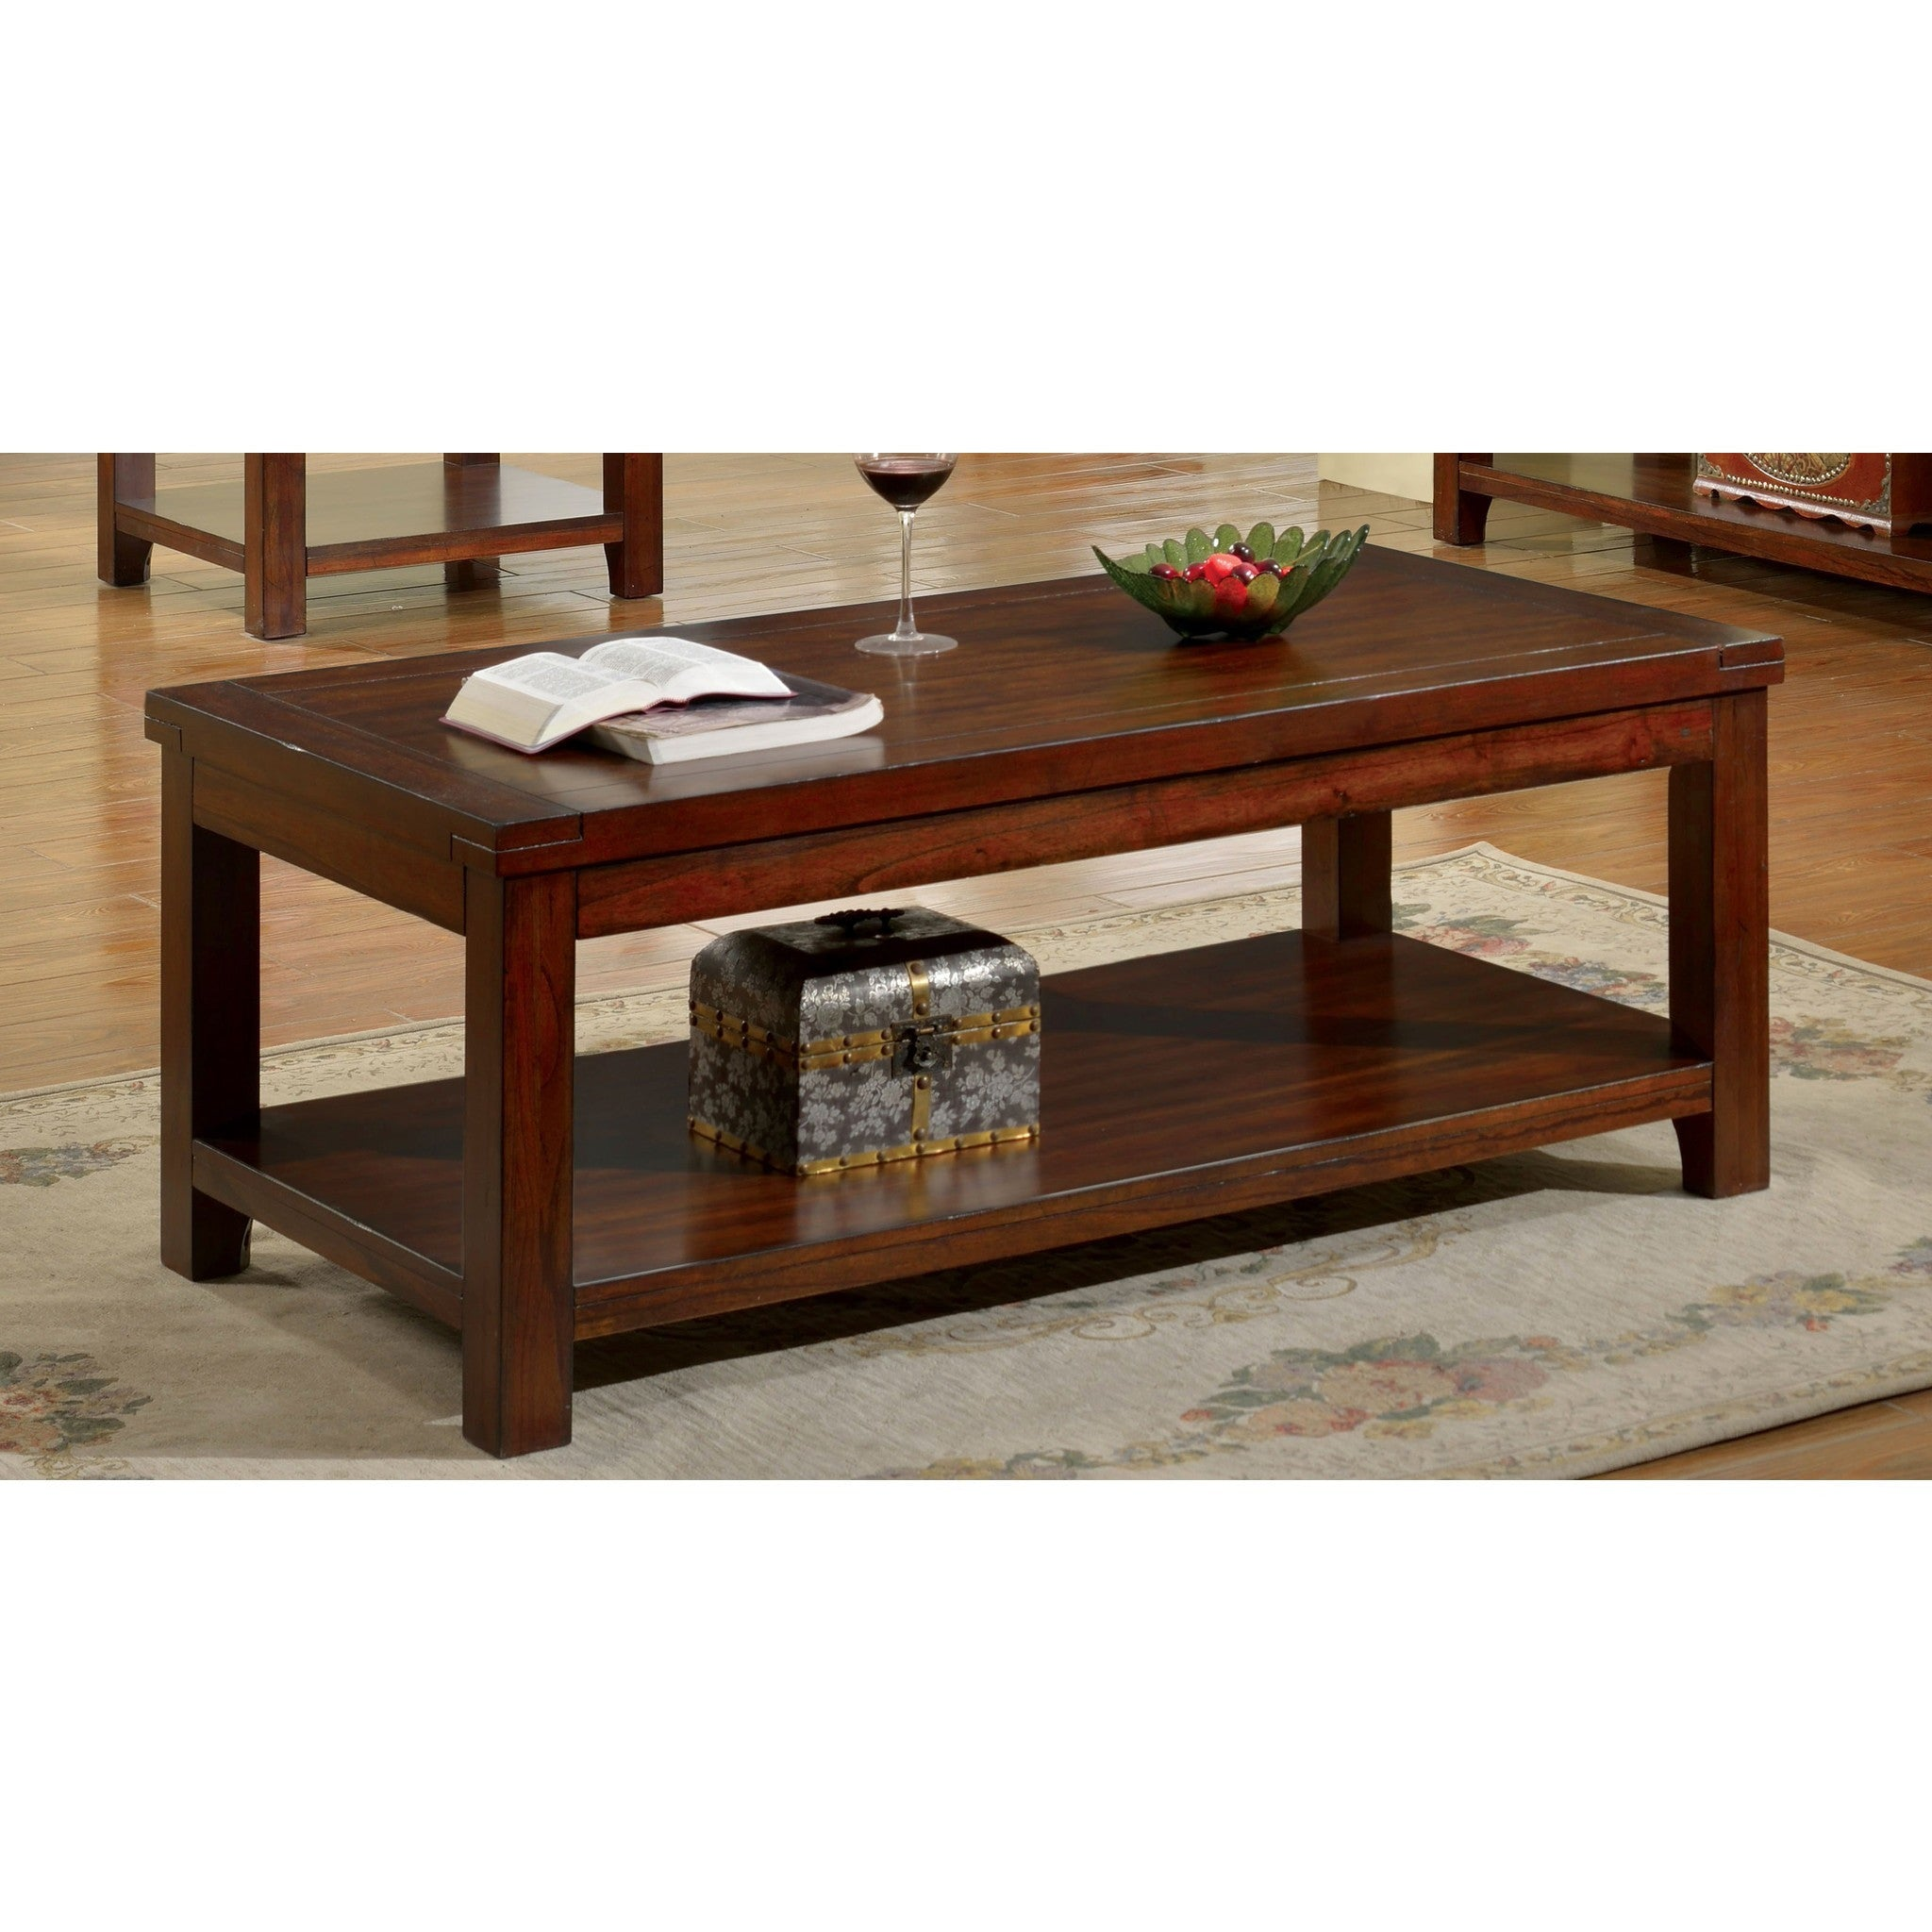 Desdin Transitional Style Open Shelf Coffee Table In Dark Cherry